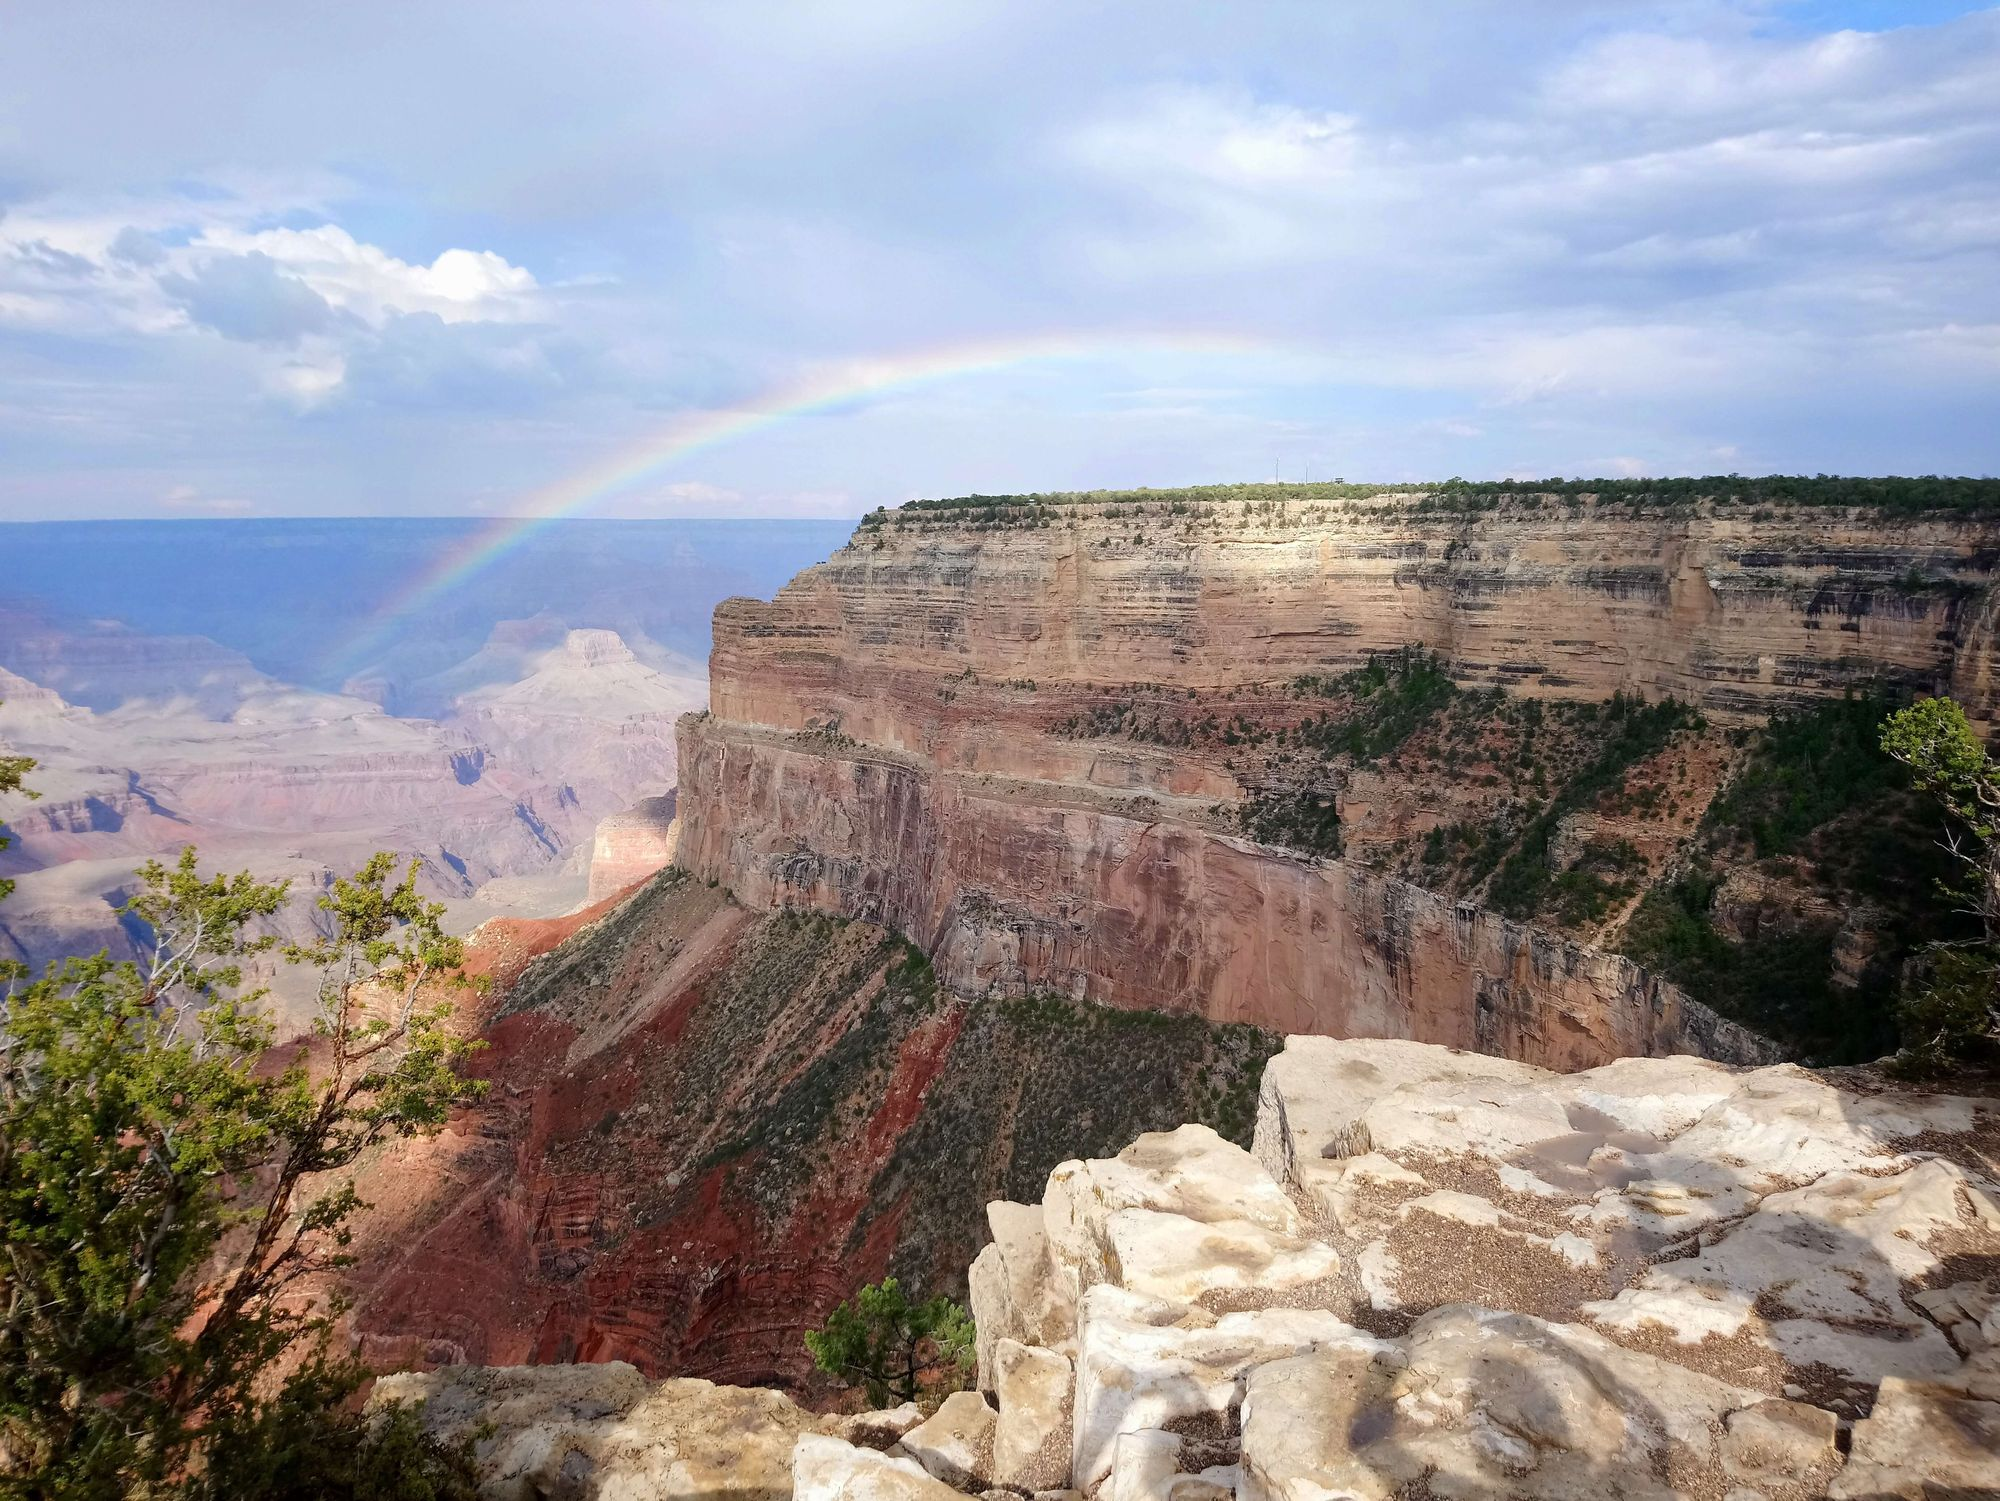 rainbow-over-brown-cliff-at-grand-canyon-national-park